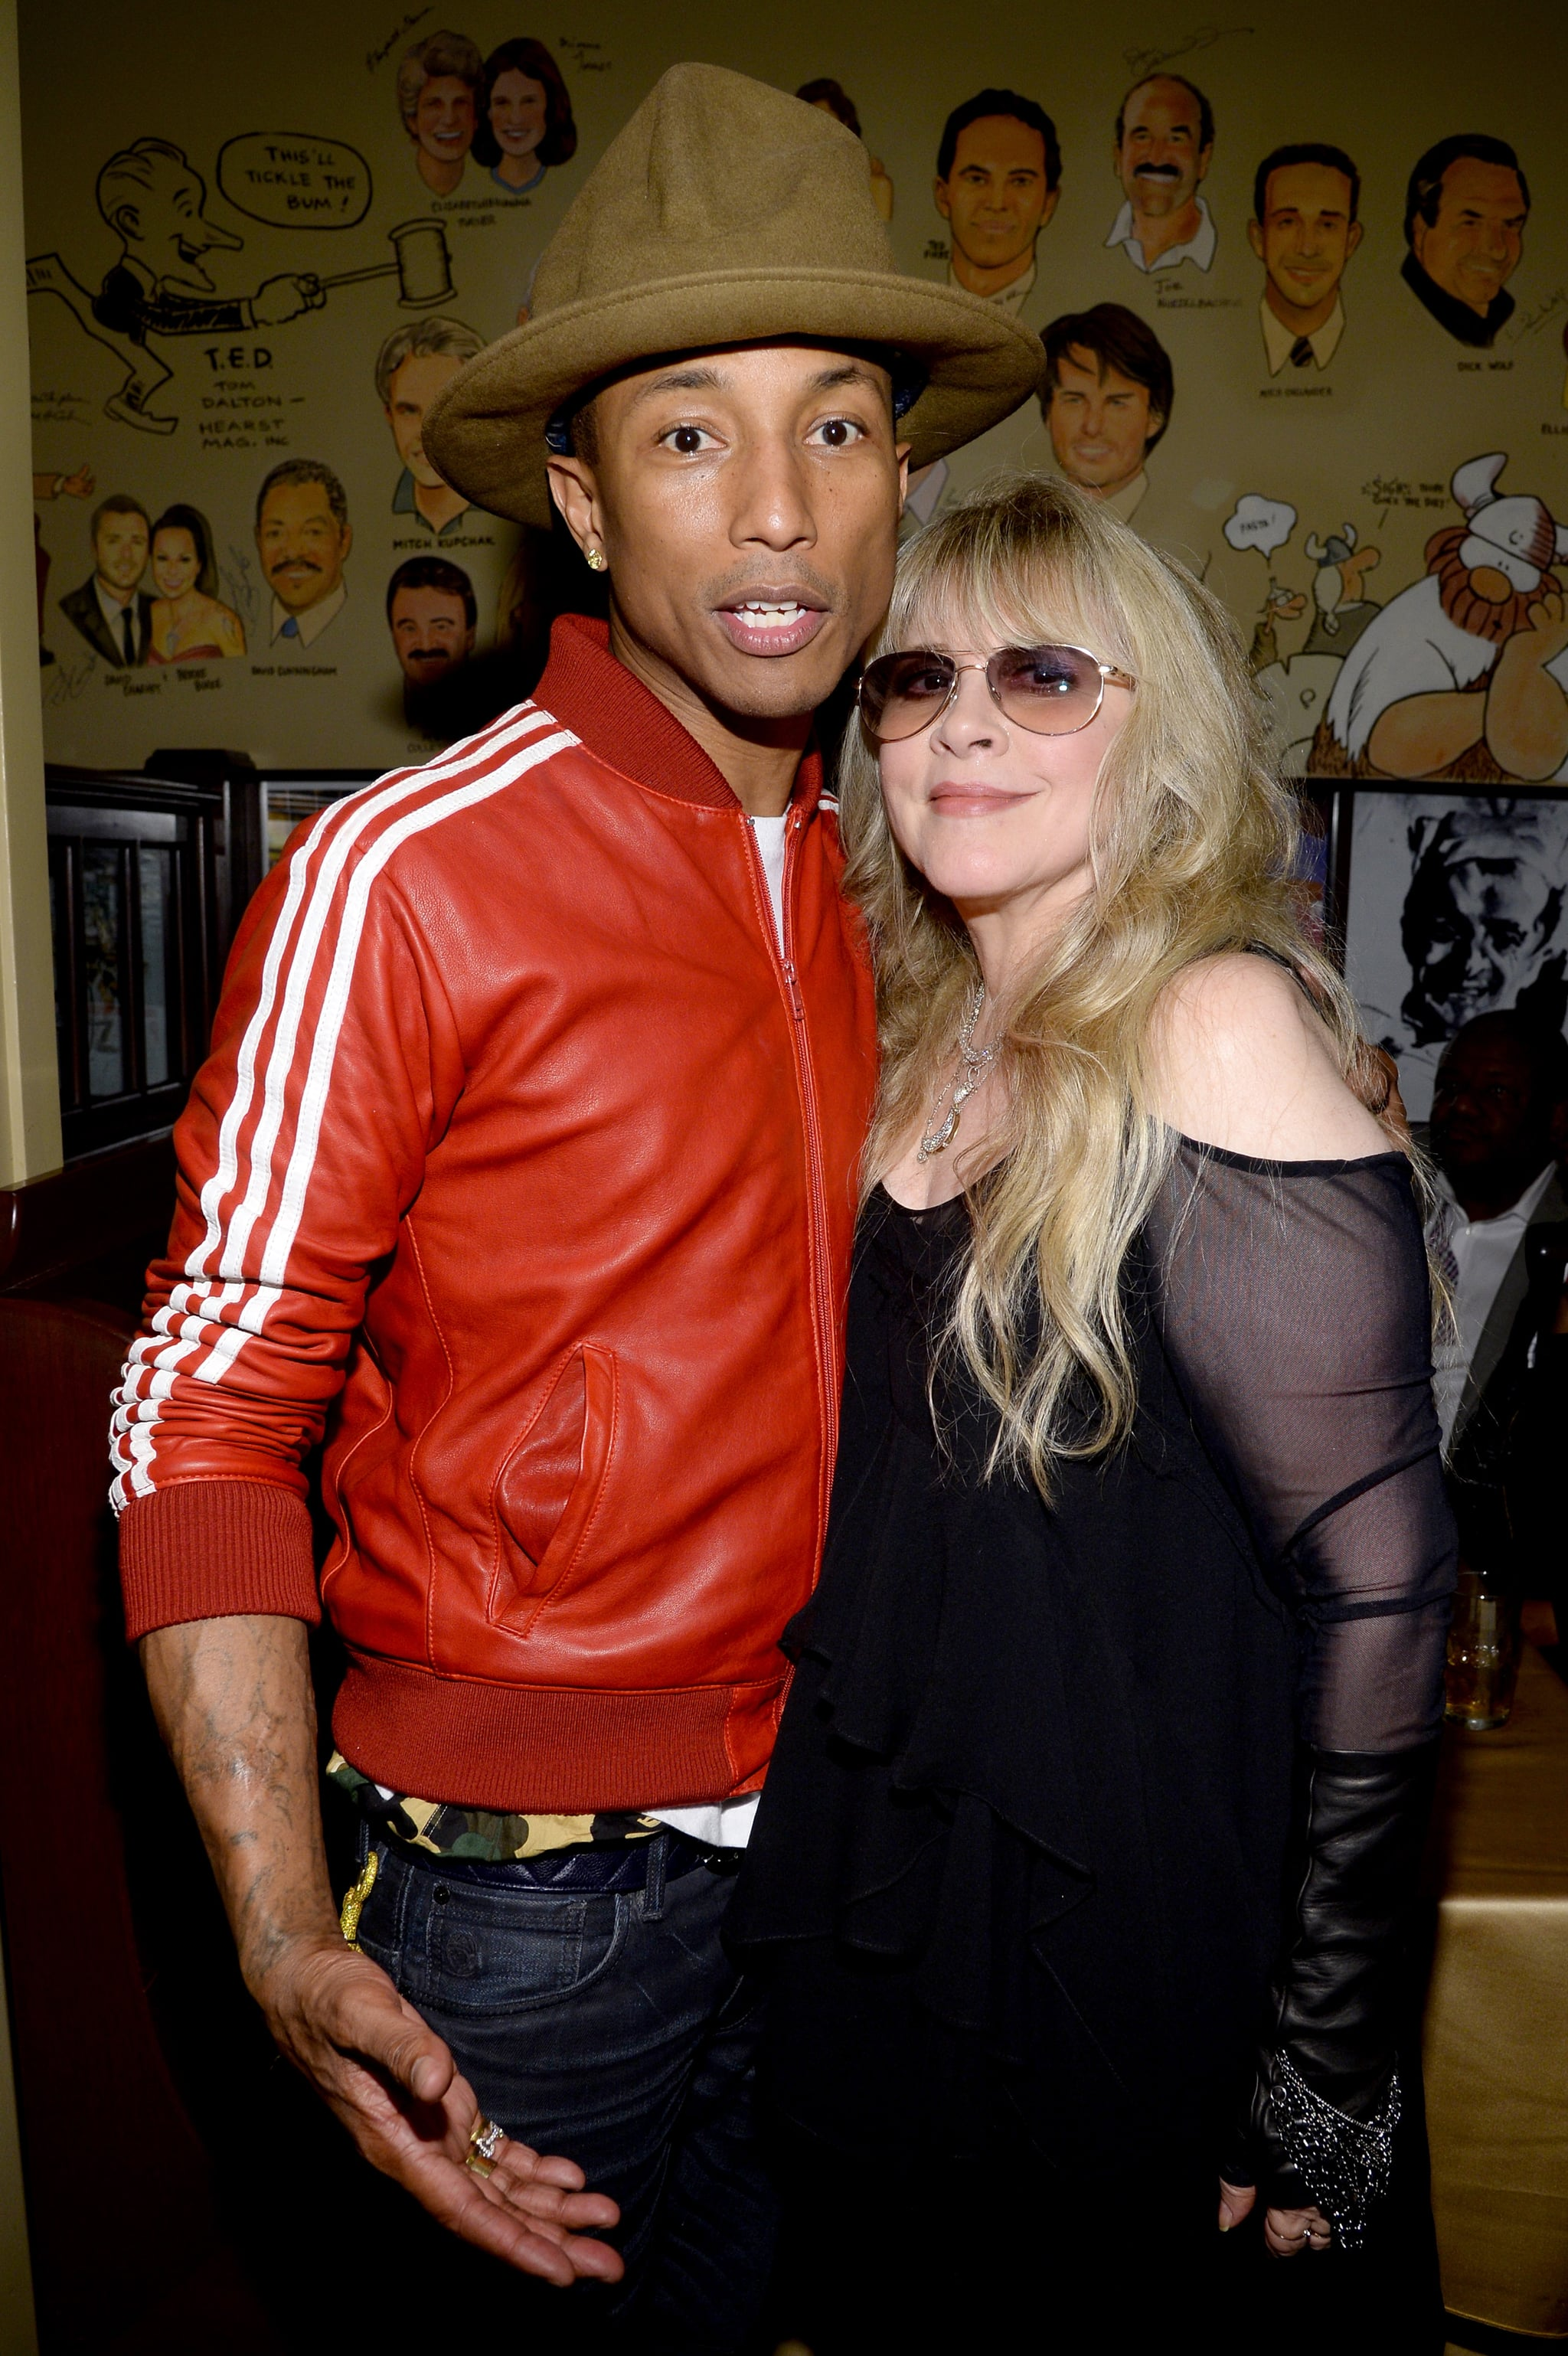 The two got candid with legendary performer Stevie Nicks.